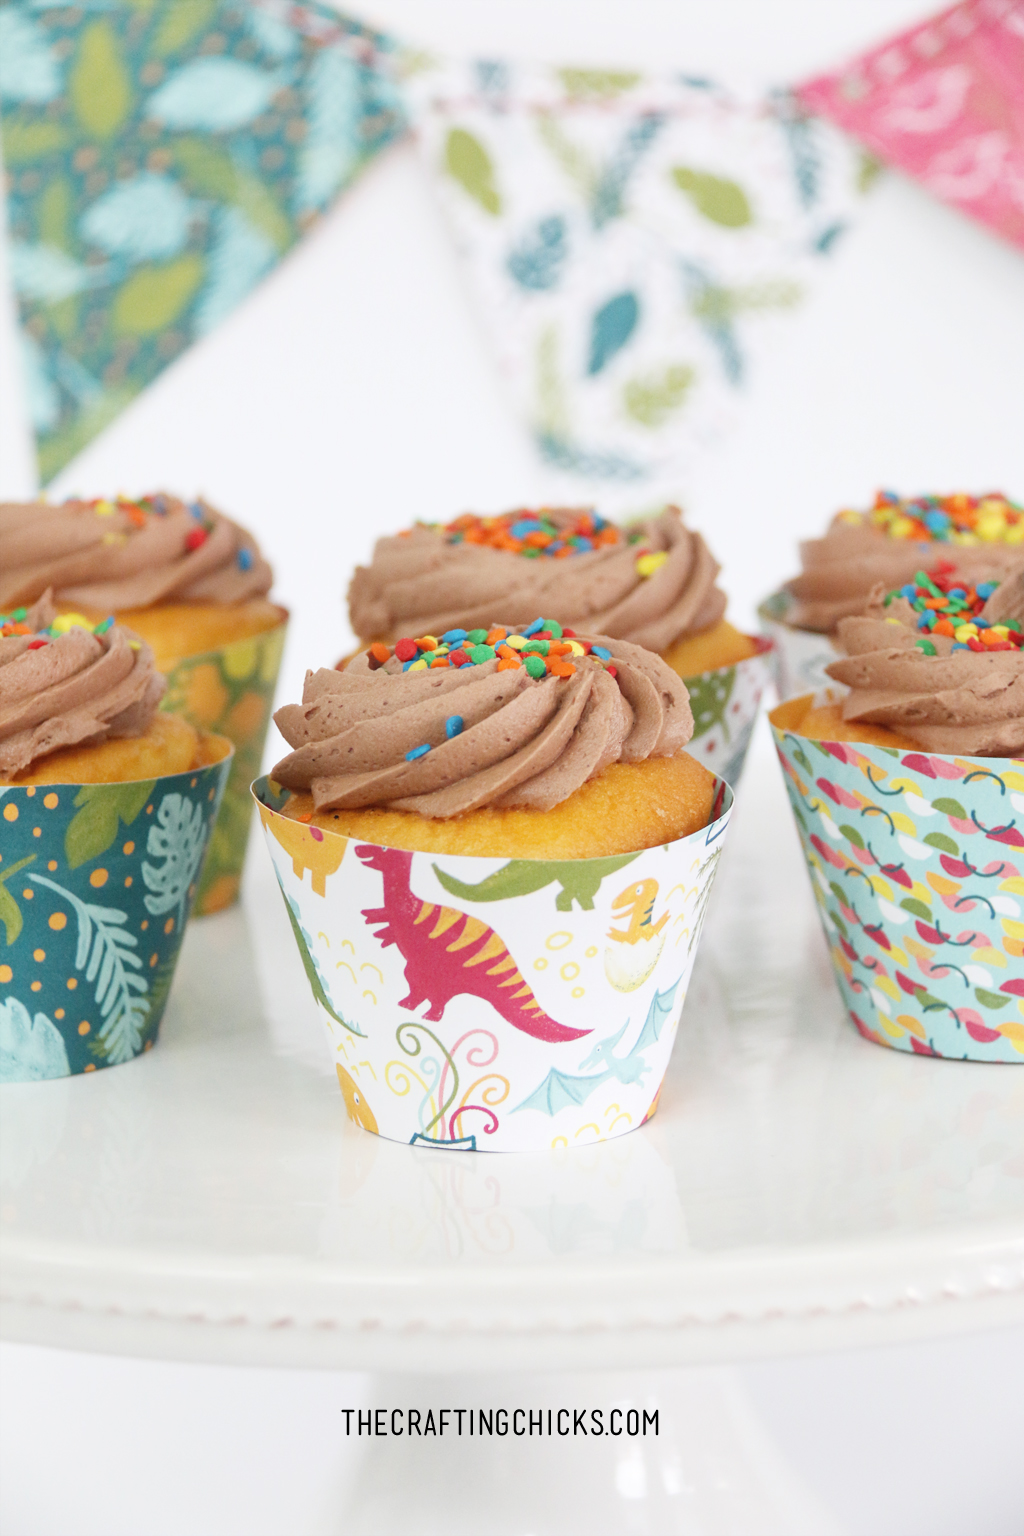 Cupcakes with chocolate frosting and DIY dinosaur cupcake paper wrappers.